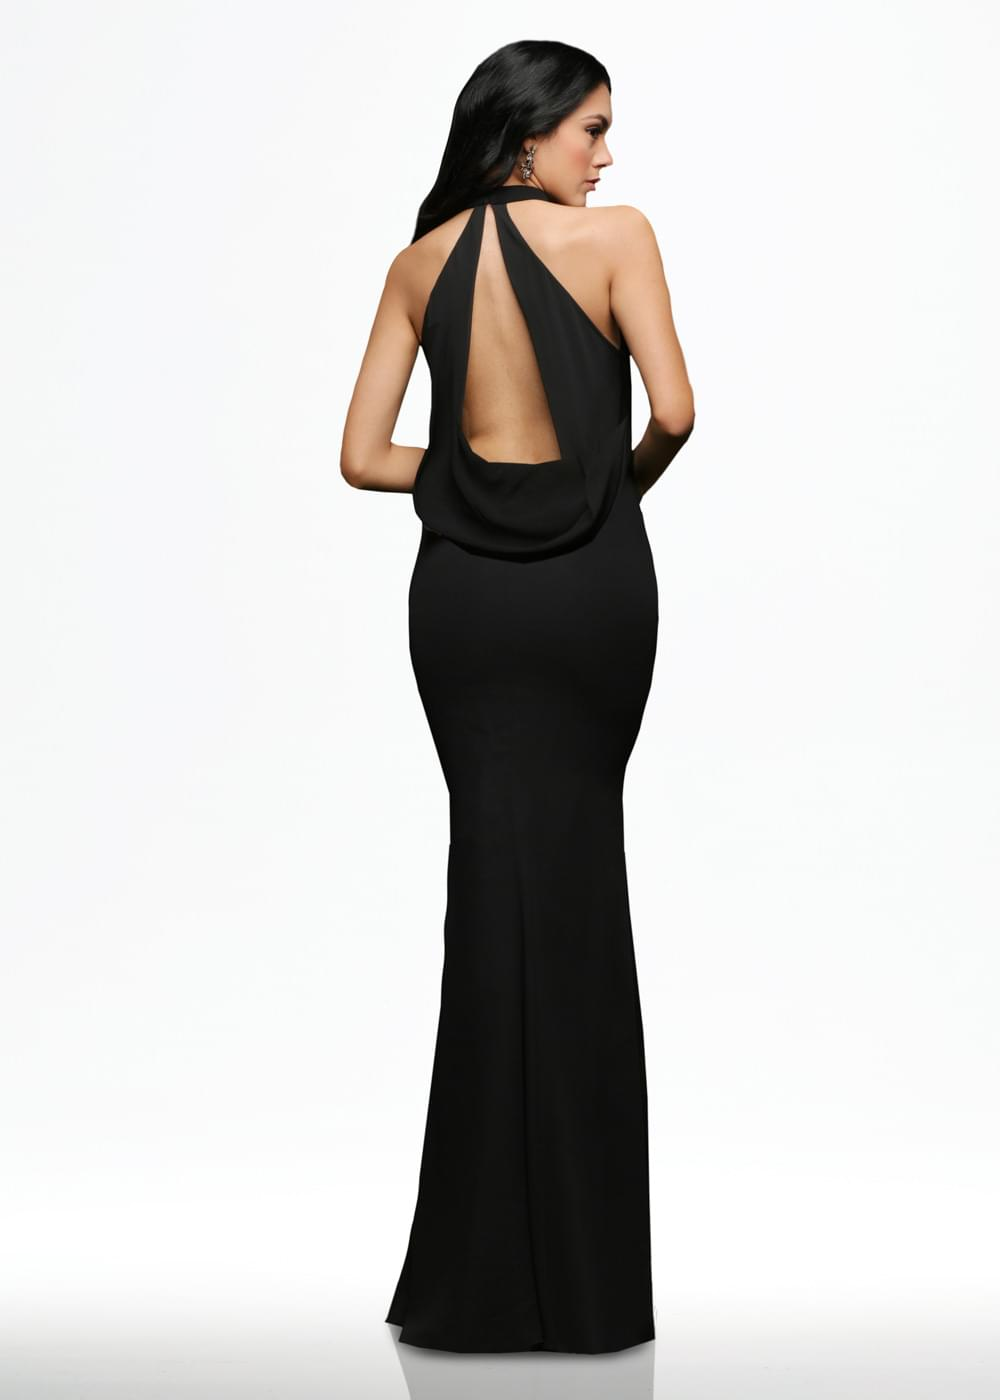 80068 Dresses with Straps By Ashdon